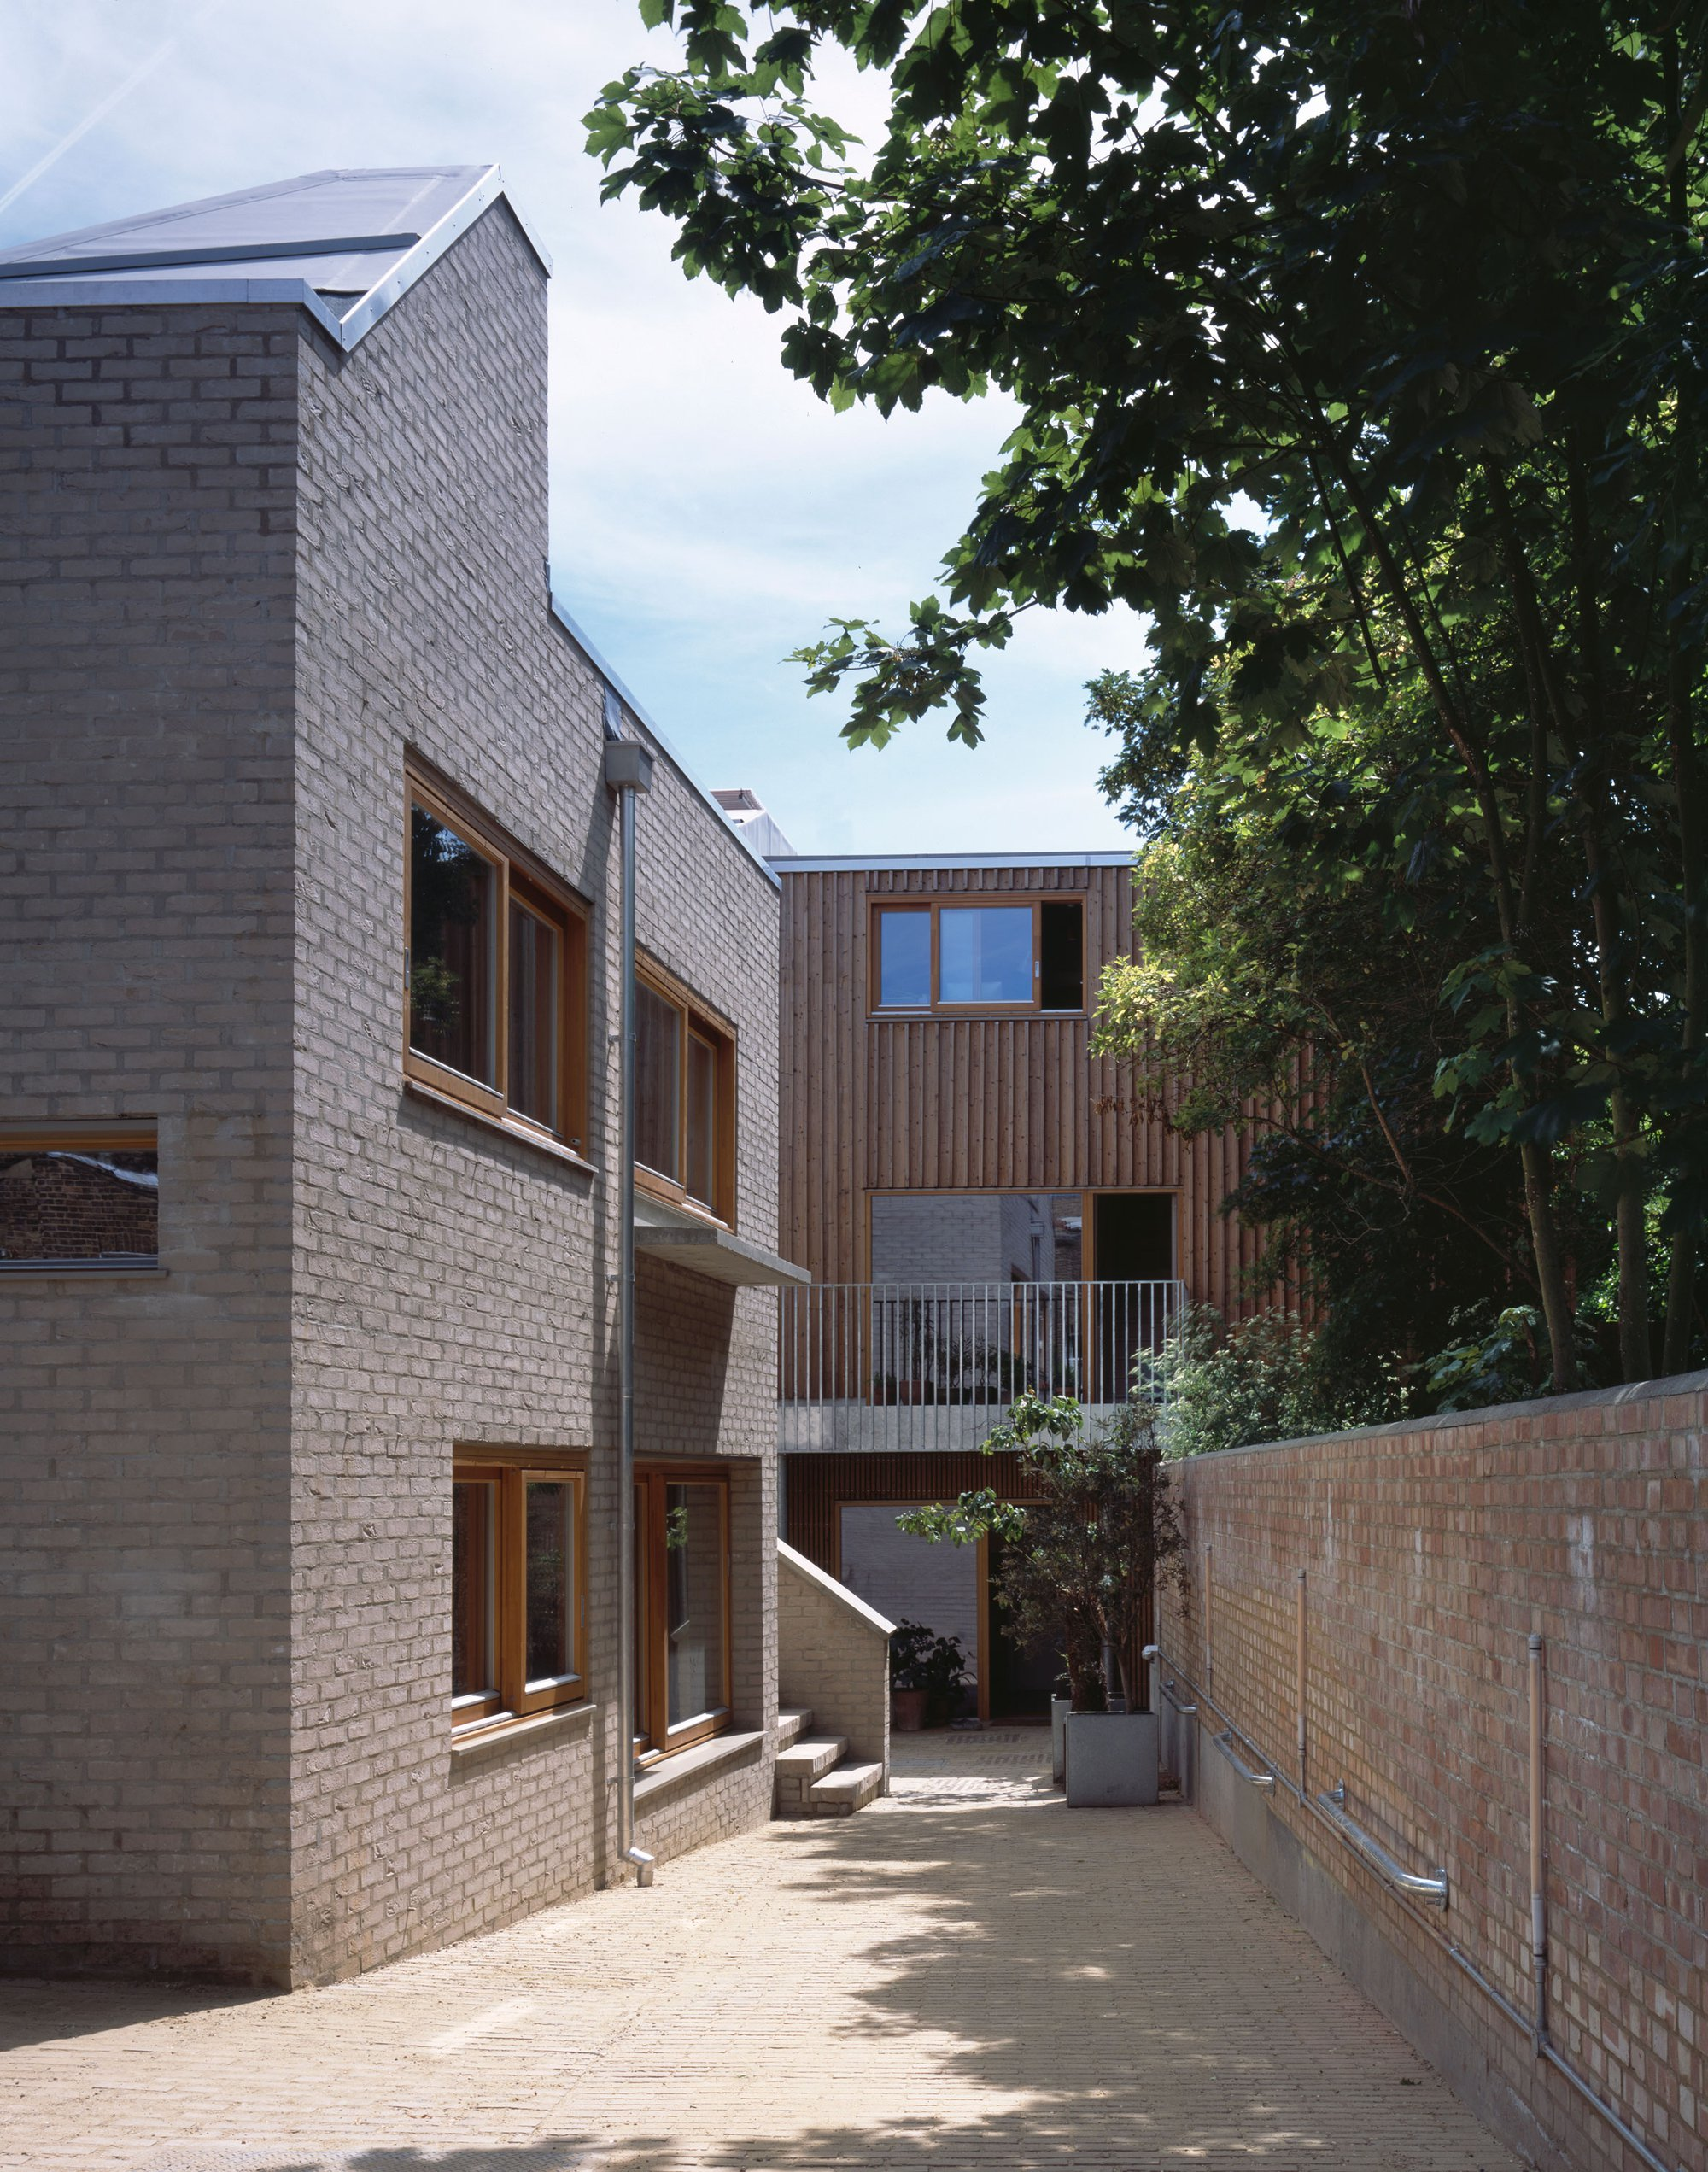 Copper lane works henley halebrown 1 6 copper lane replaces a disused childrens nursery on a 1000m2 backland site behind residential streets malvernweather Gallery